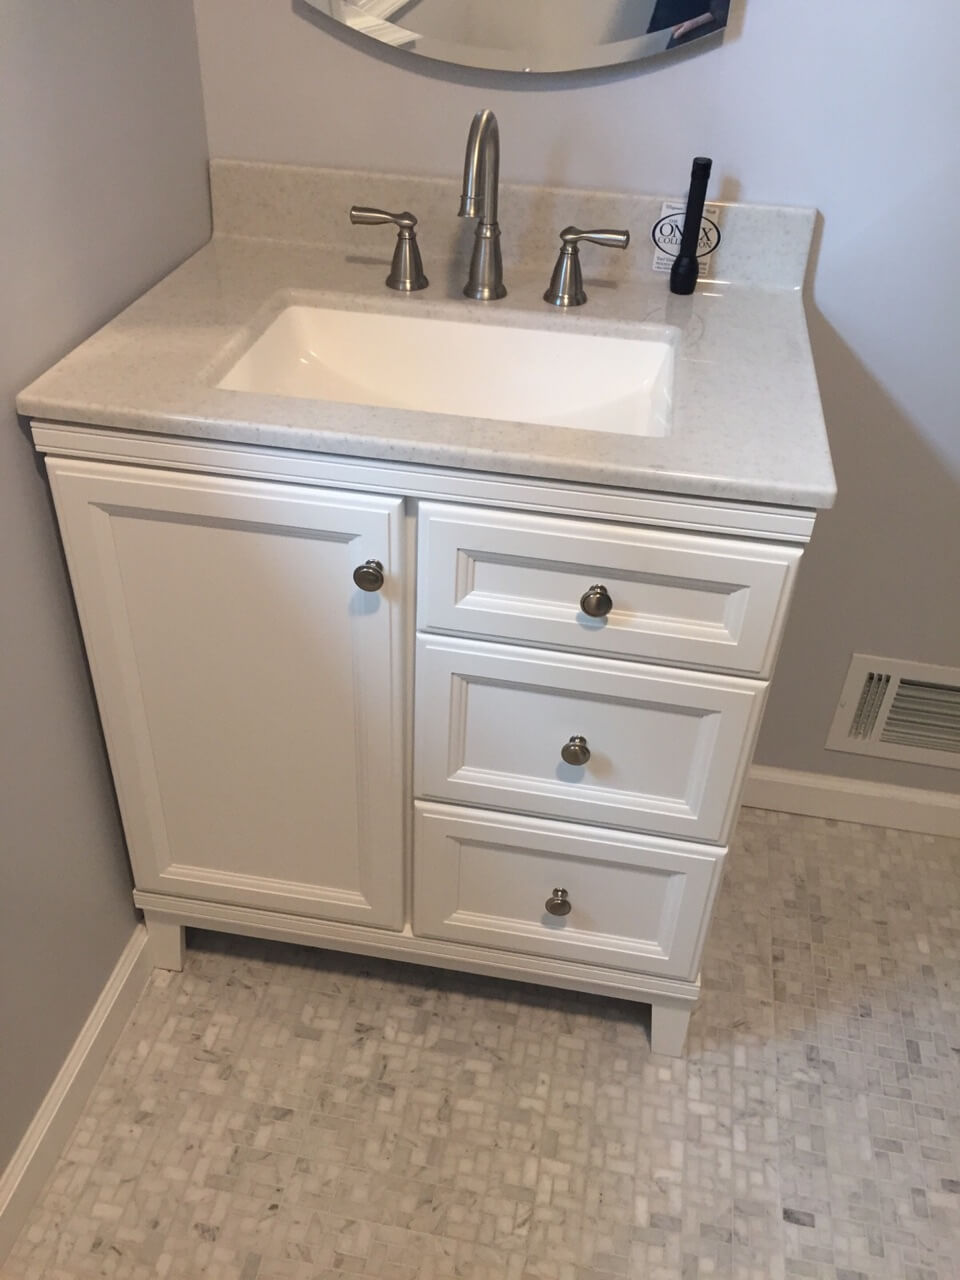 b-b-maintenance-bathroom-sink-installation | B & B Maintenance